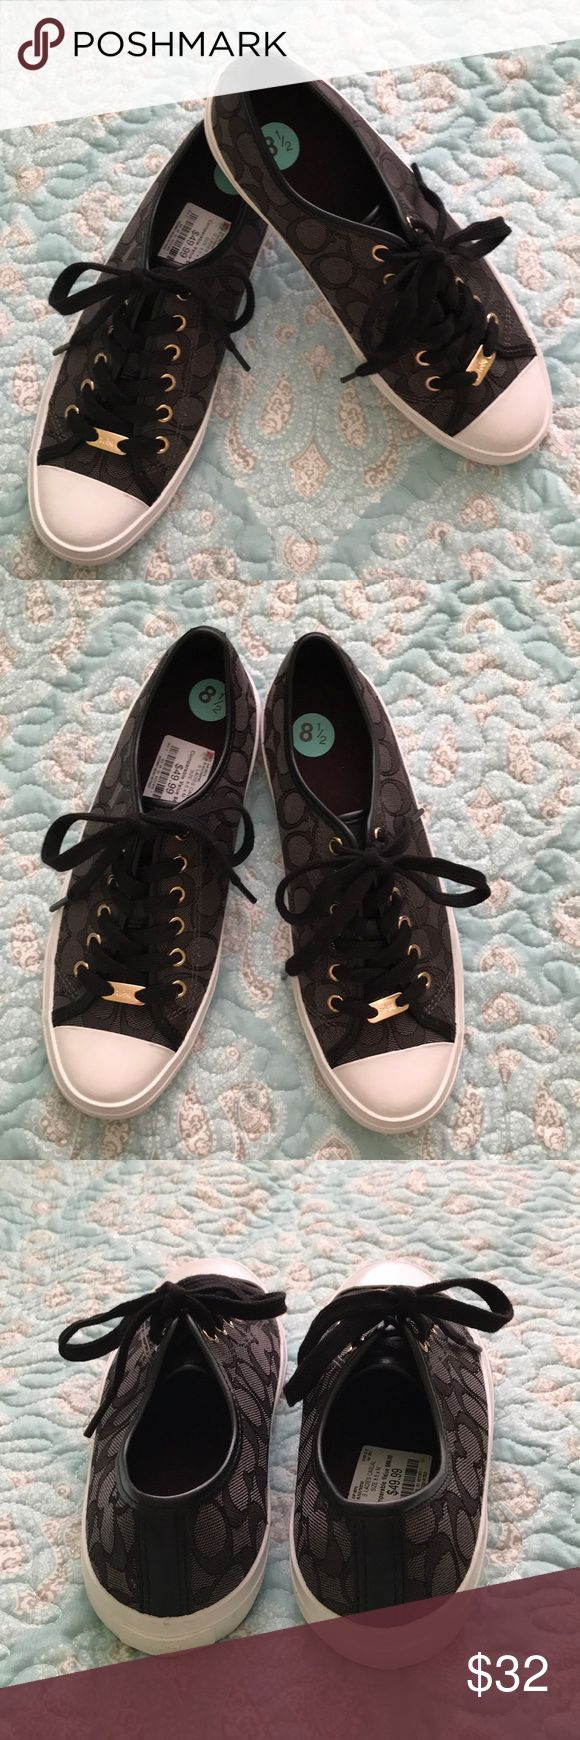 Coach Sneakers. NWT! Coach sneakers. Colors- black, white. Size- 8.5. Beautiful! Gold tone tags with Coach logo. See pics. Retails for 49.99 Coach Shoes Sneakers